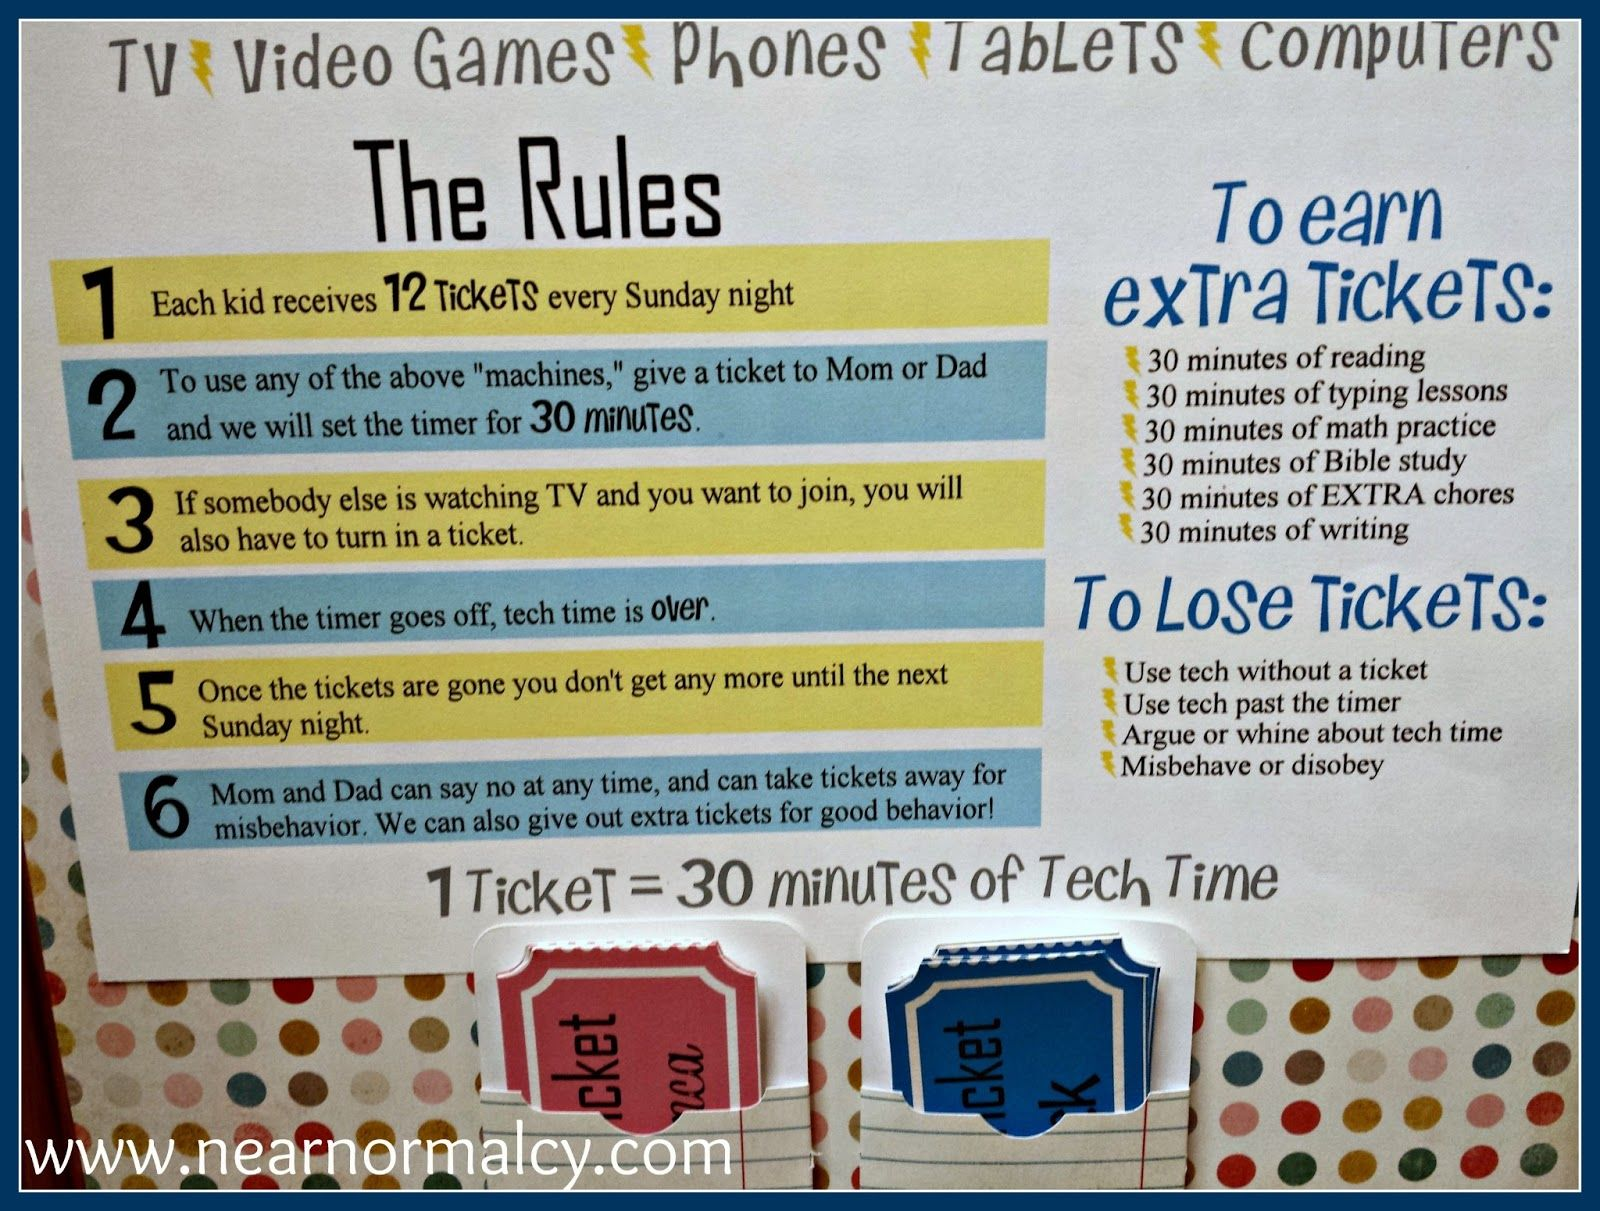 Near Normalcy Tech Tickets Or How To Pry The Video Game